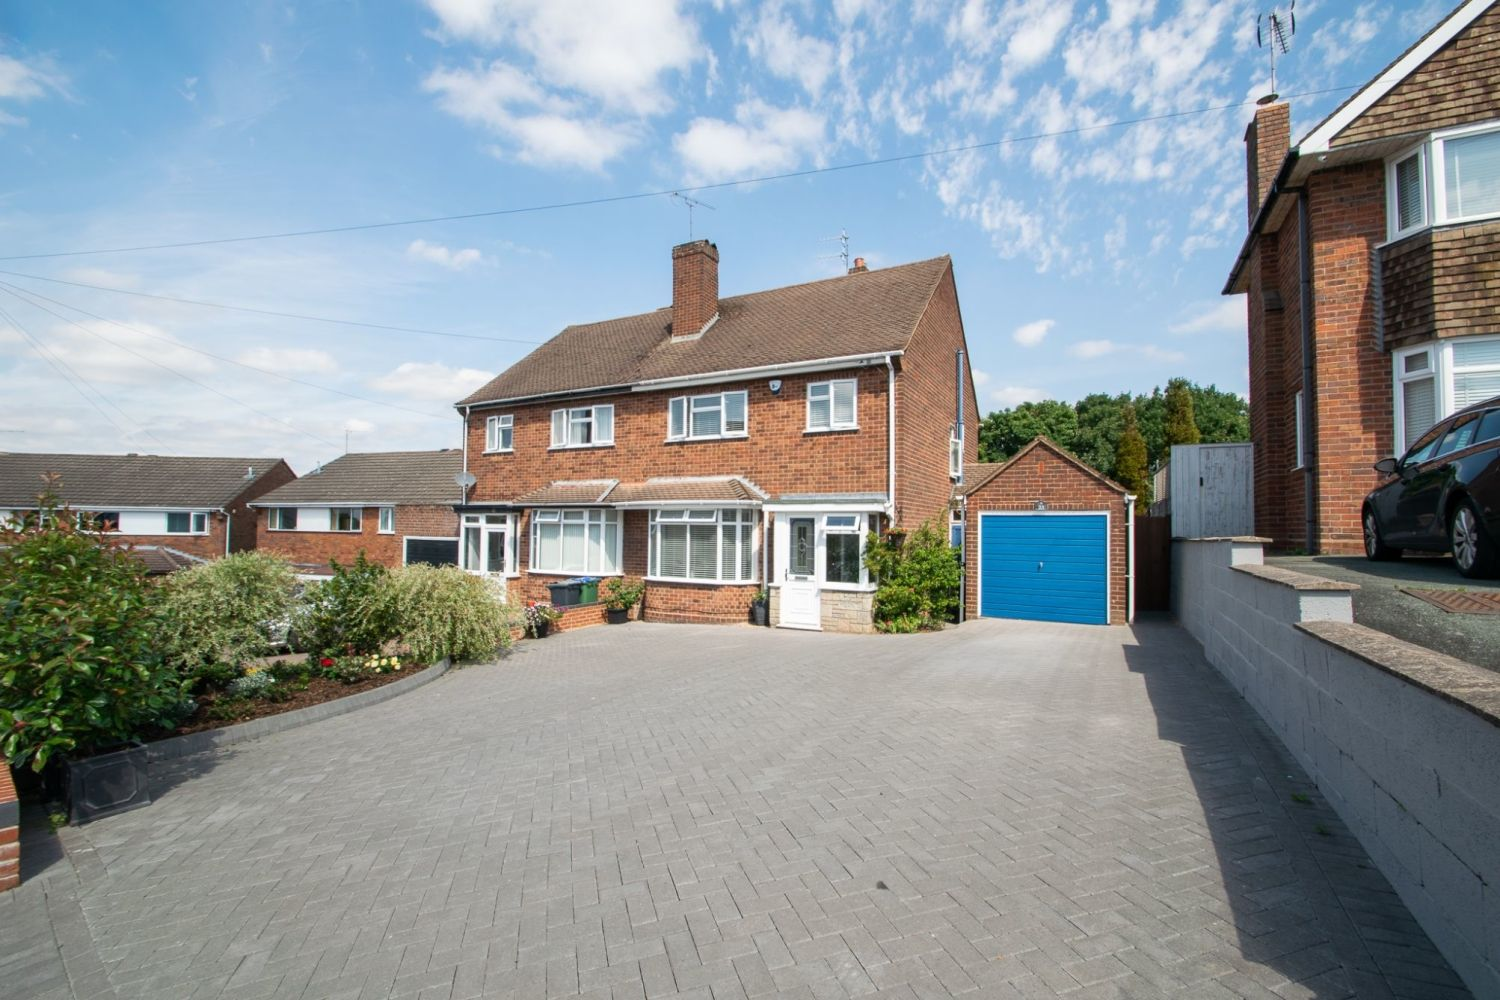 3 bed semi-detached for sale in High Haden Crescent, Cradley Heath - Property Image 1